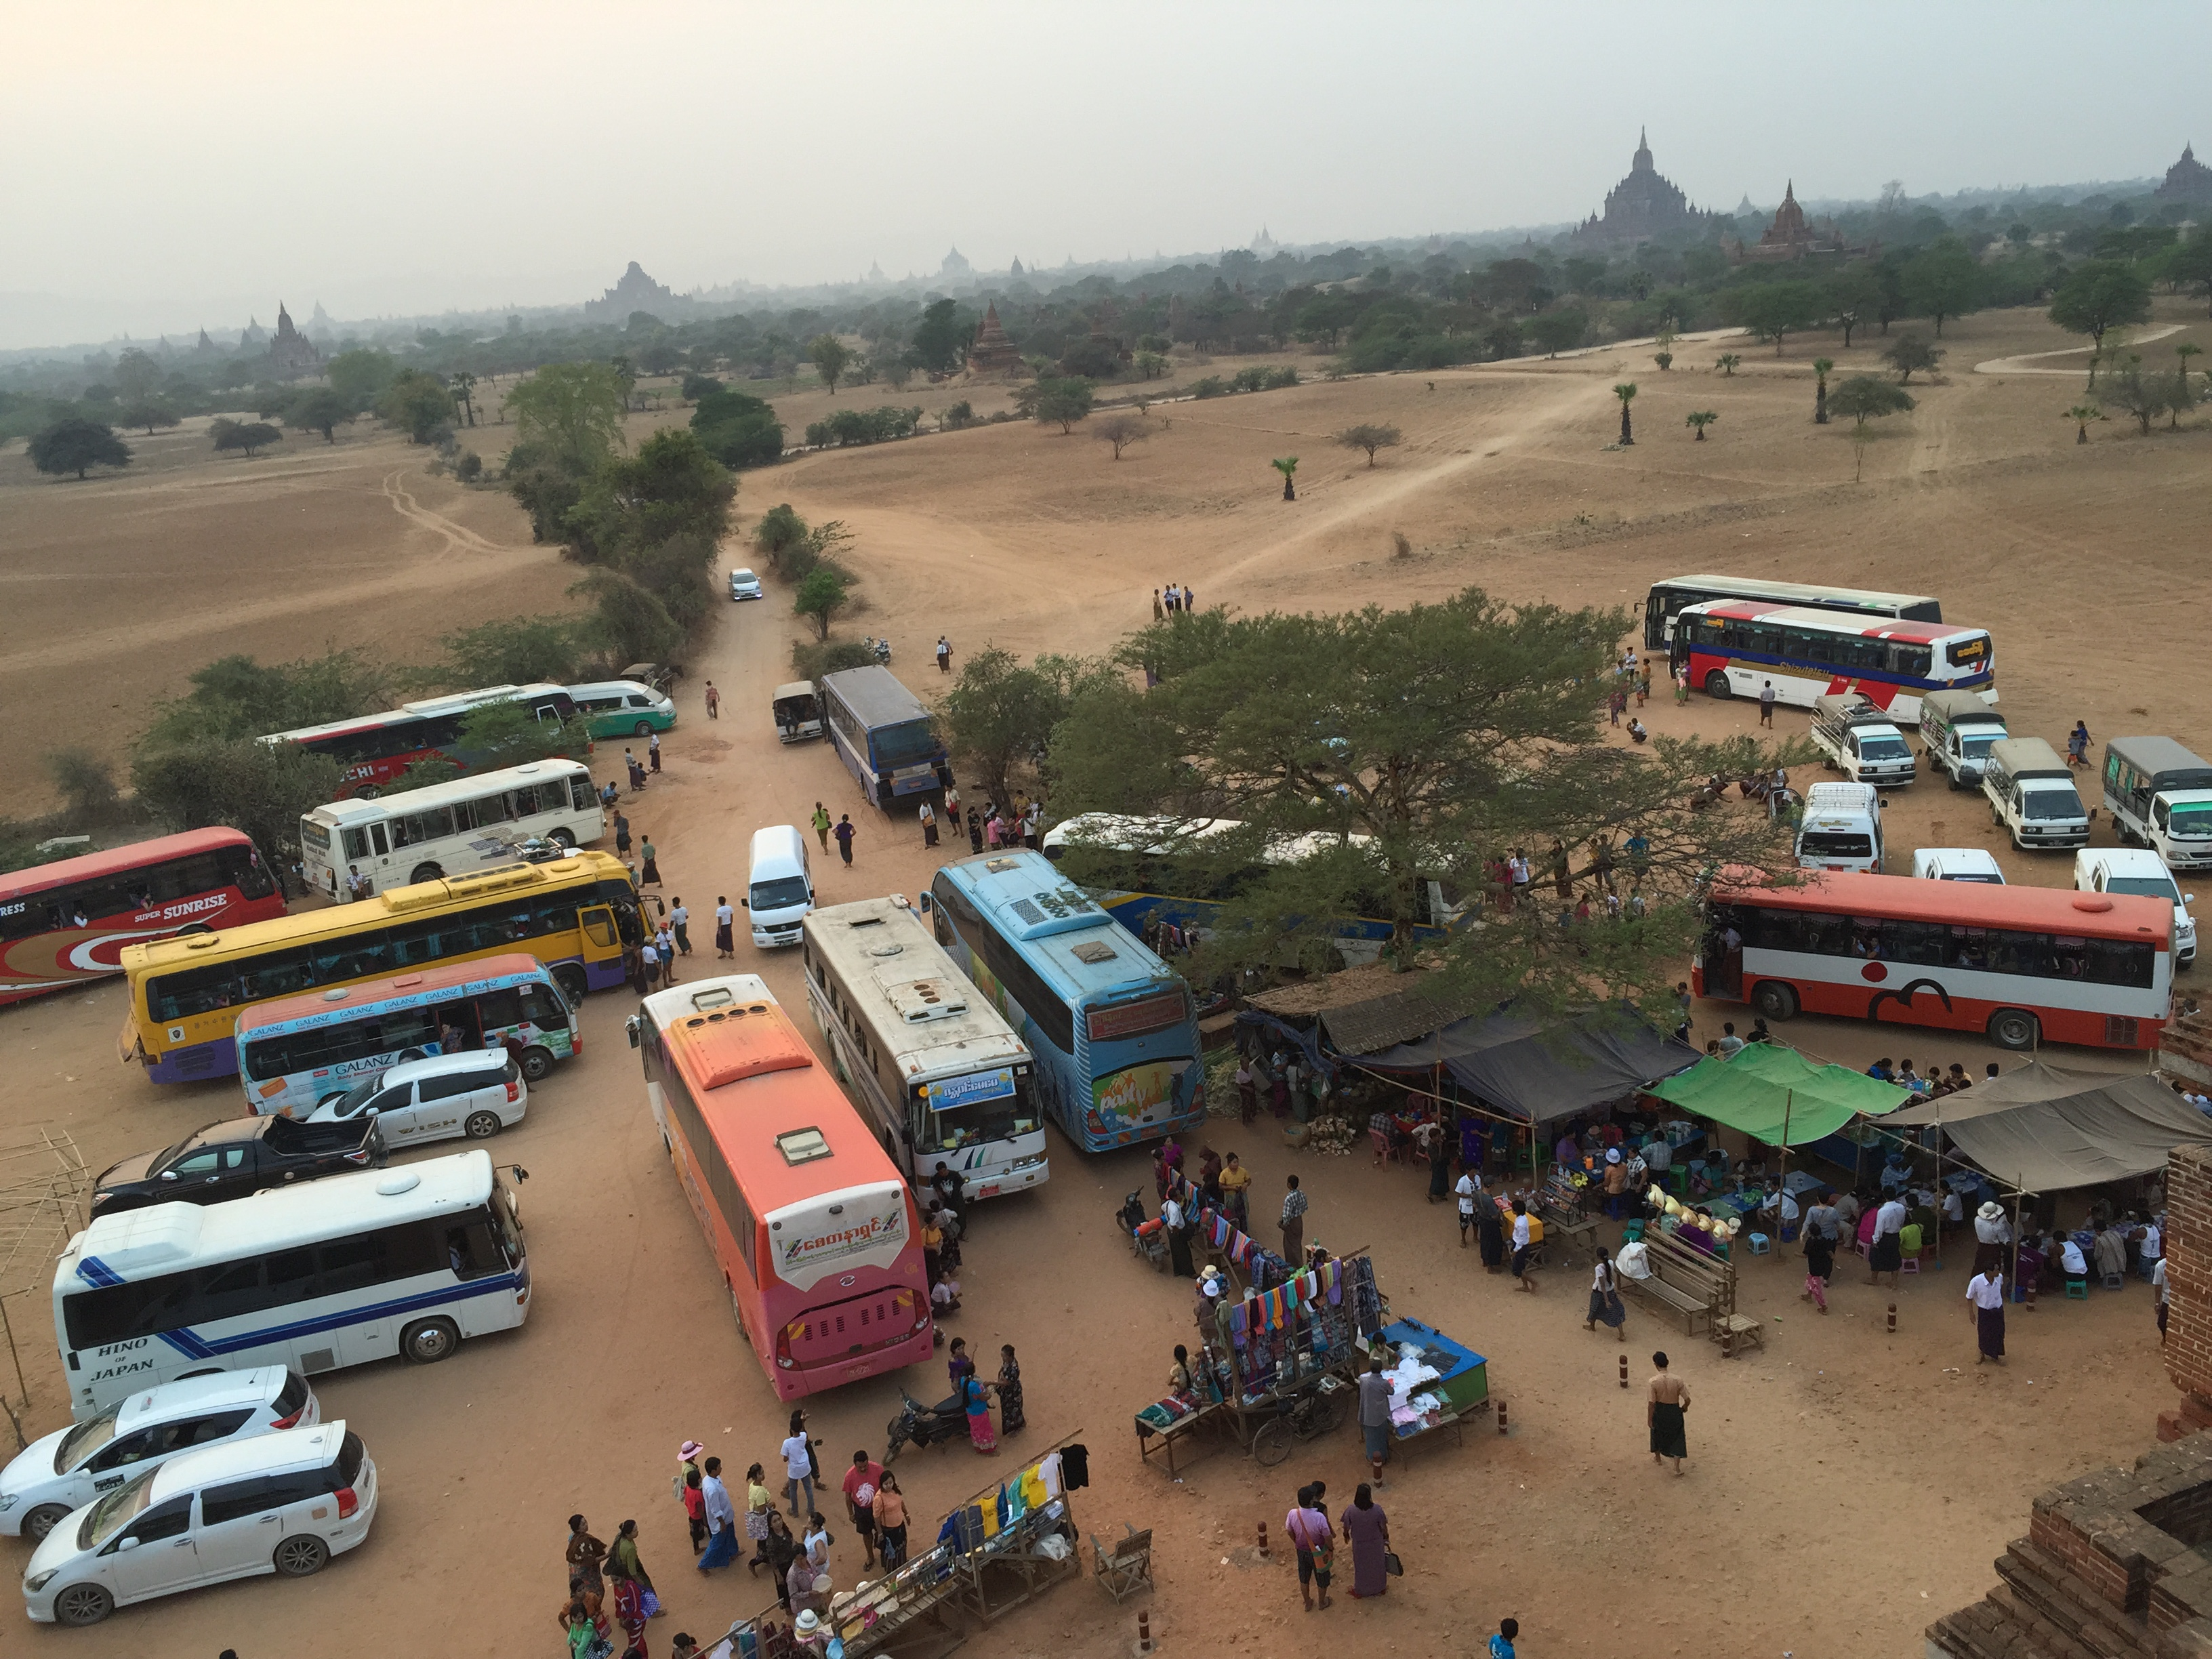 Touristes, Bagan, Birmanie